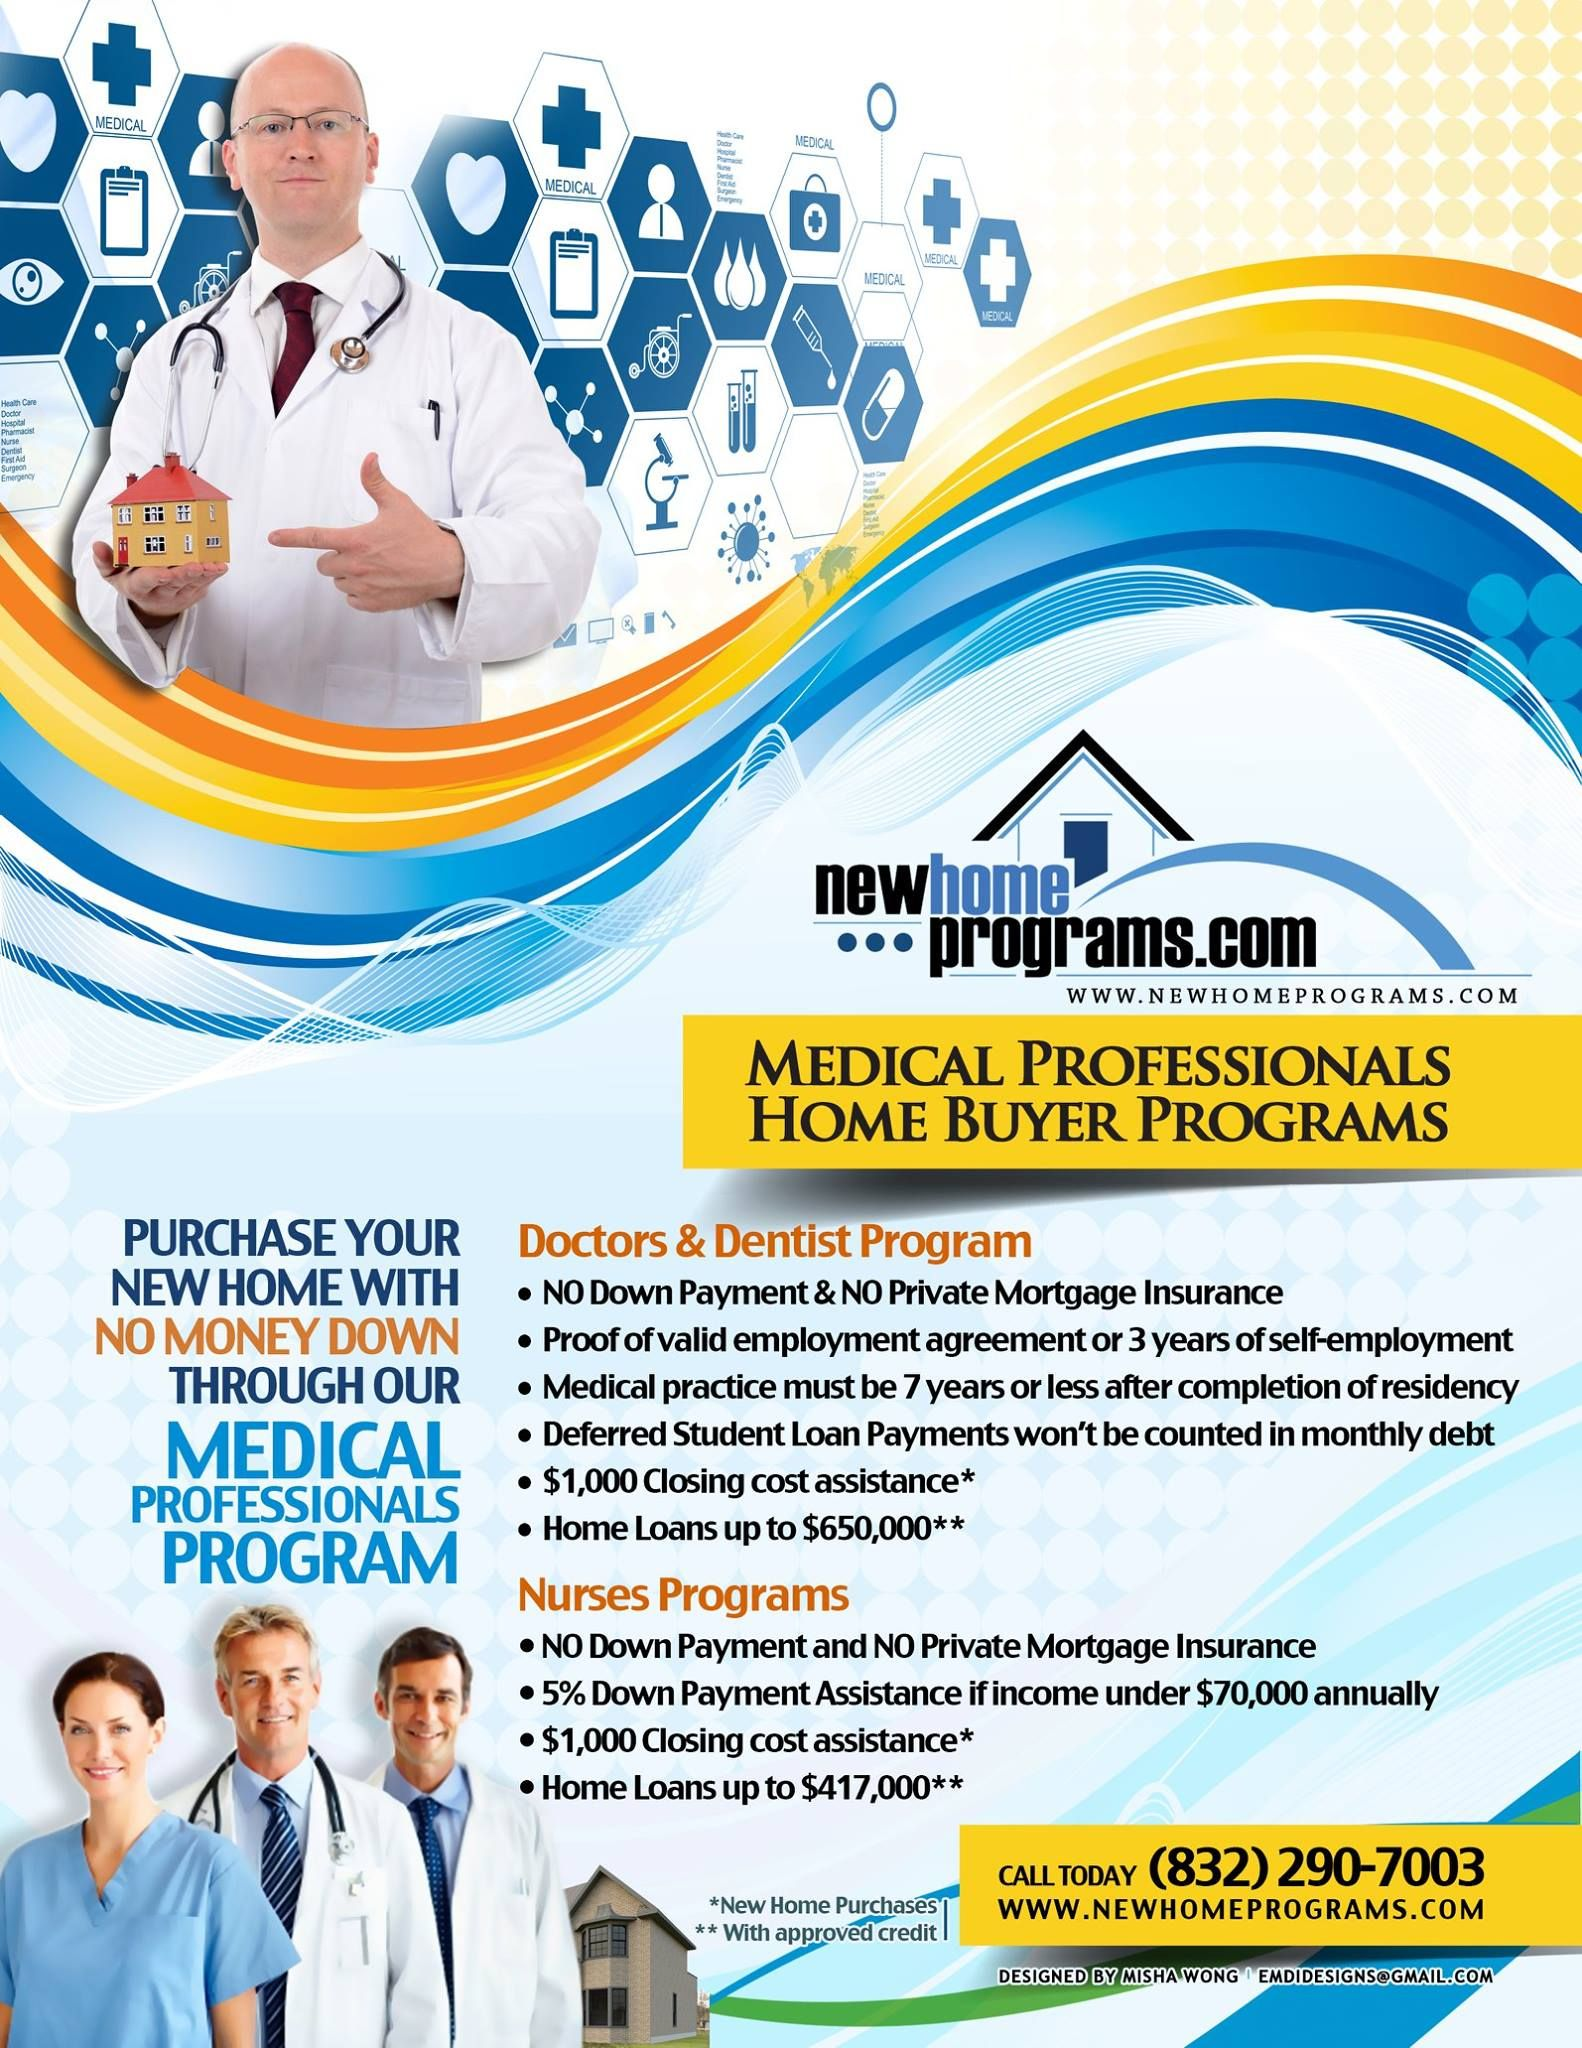 If you are a medical professional, Newhomeprograms.com LLC can help you in the home buying experience. We have the tools ready to assist you in this journey!